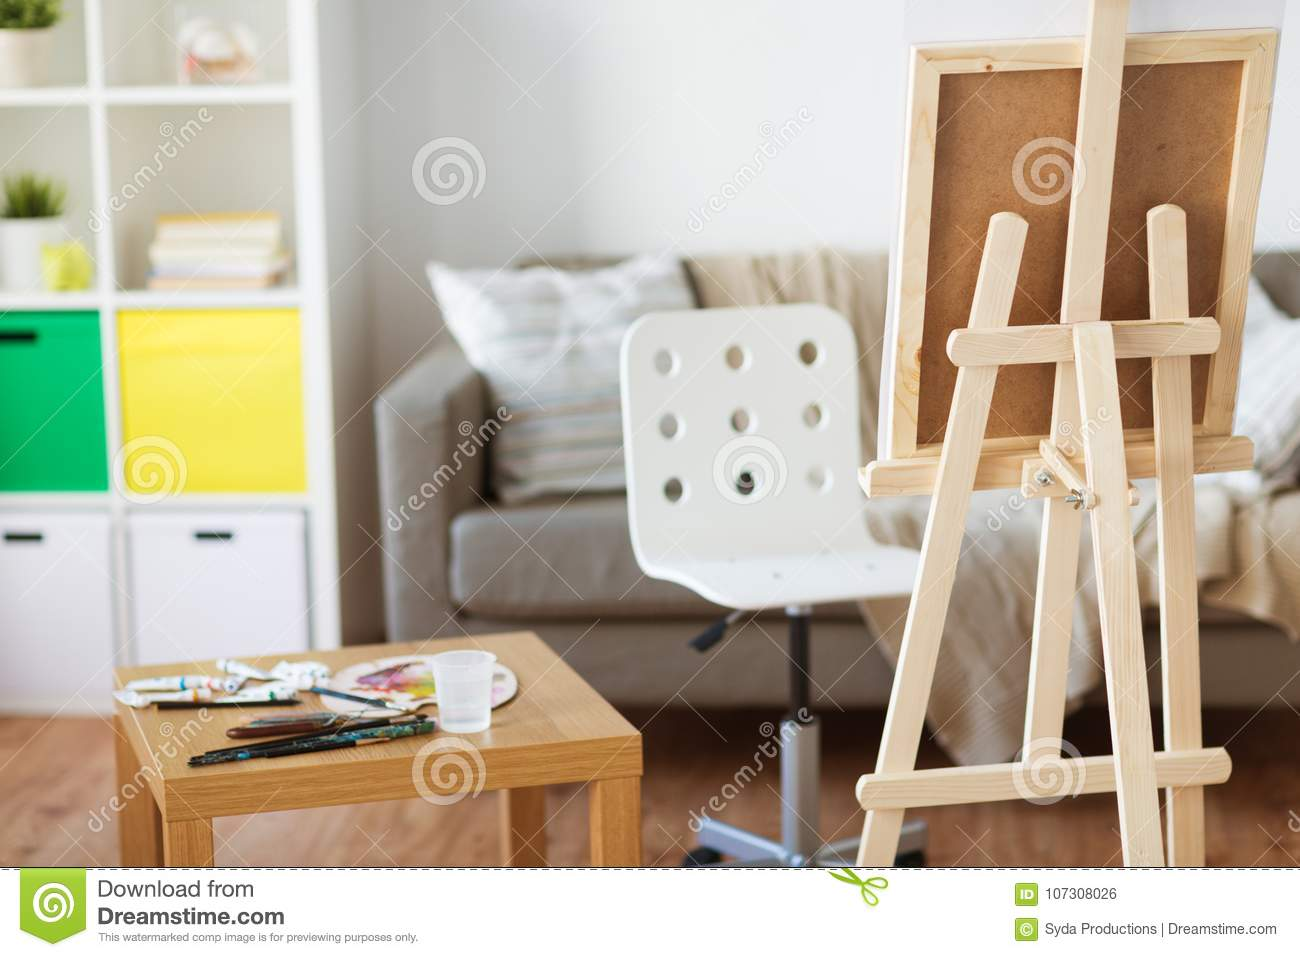 Easel And Artistic Tools At Home Or Art Studio Stock Photo - Image ...